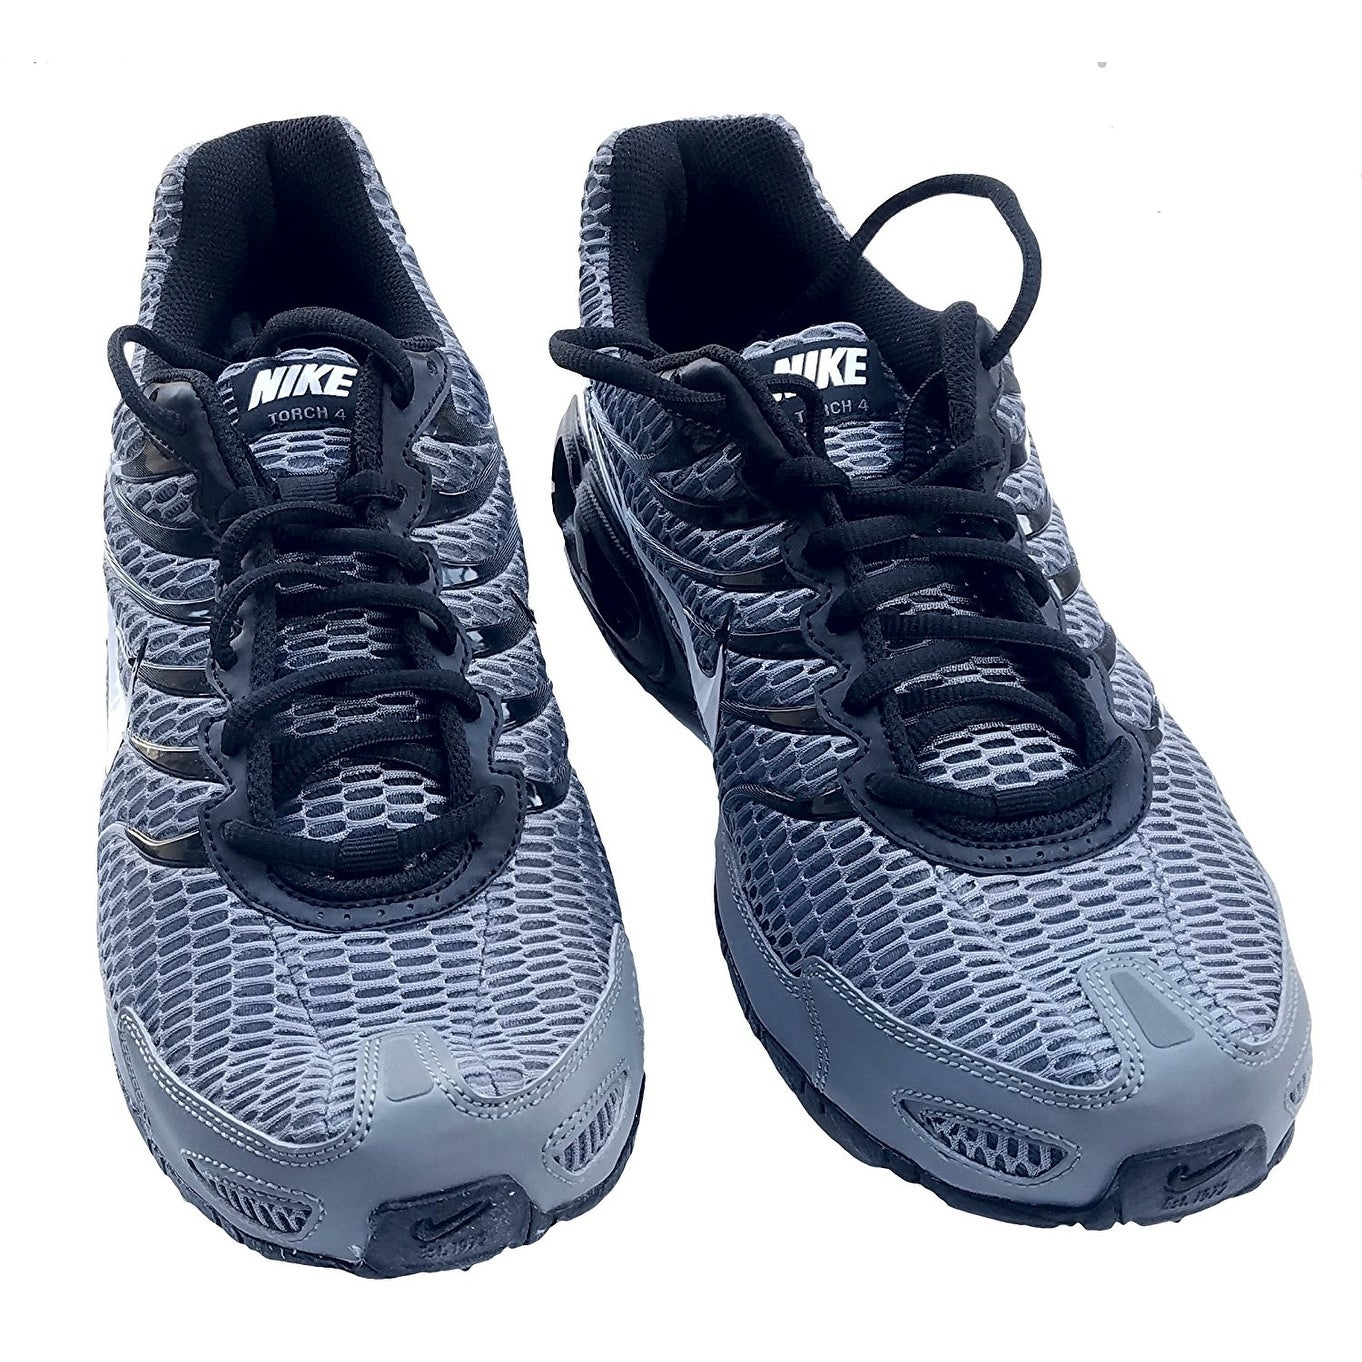 7b8e69bfff2 Shop Men s Nike Air Max Torch 4 Running Shoe Cool Grey White Black Pure  Platinum - Free Shipping Today - Overstock - 17941816